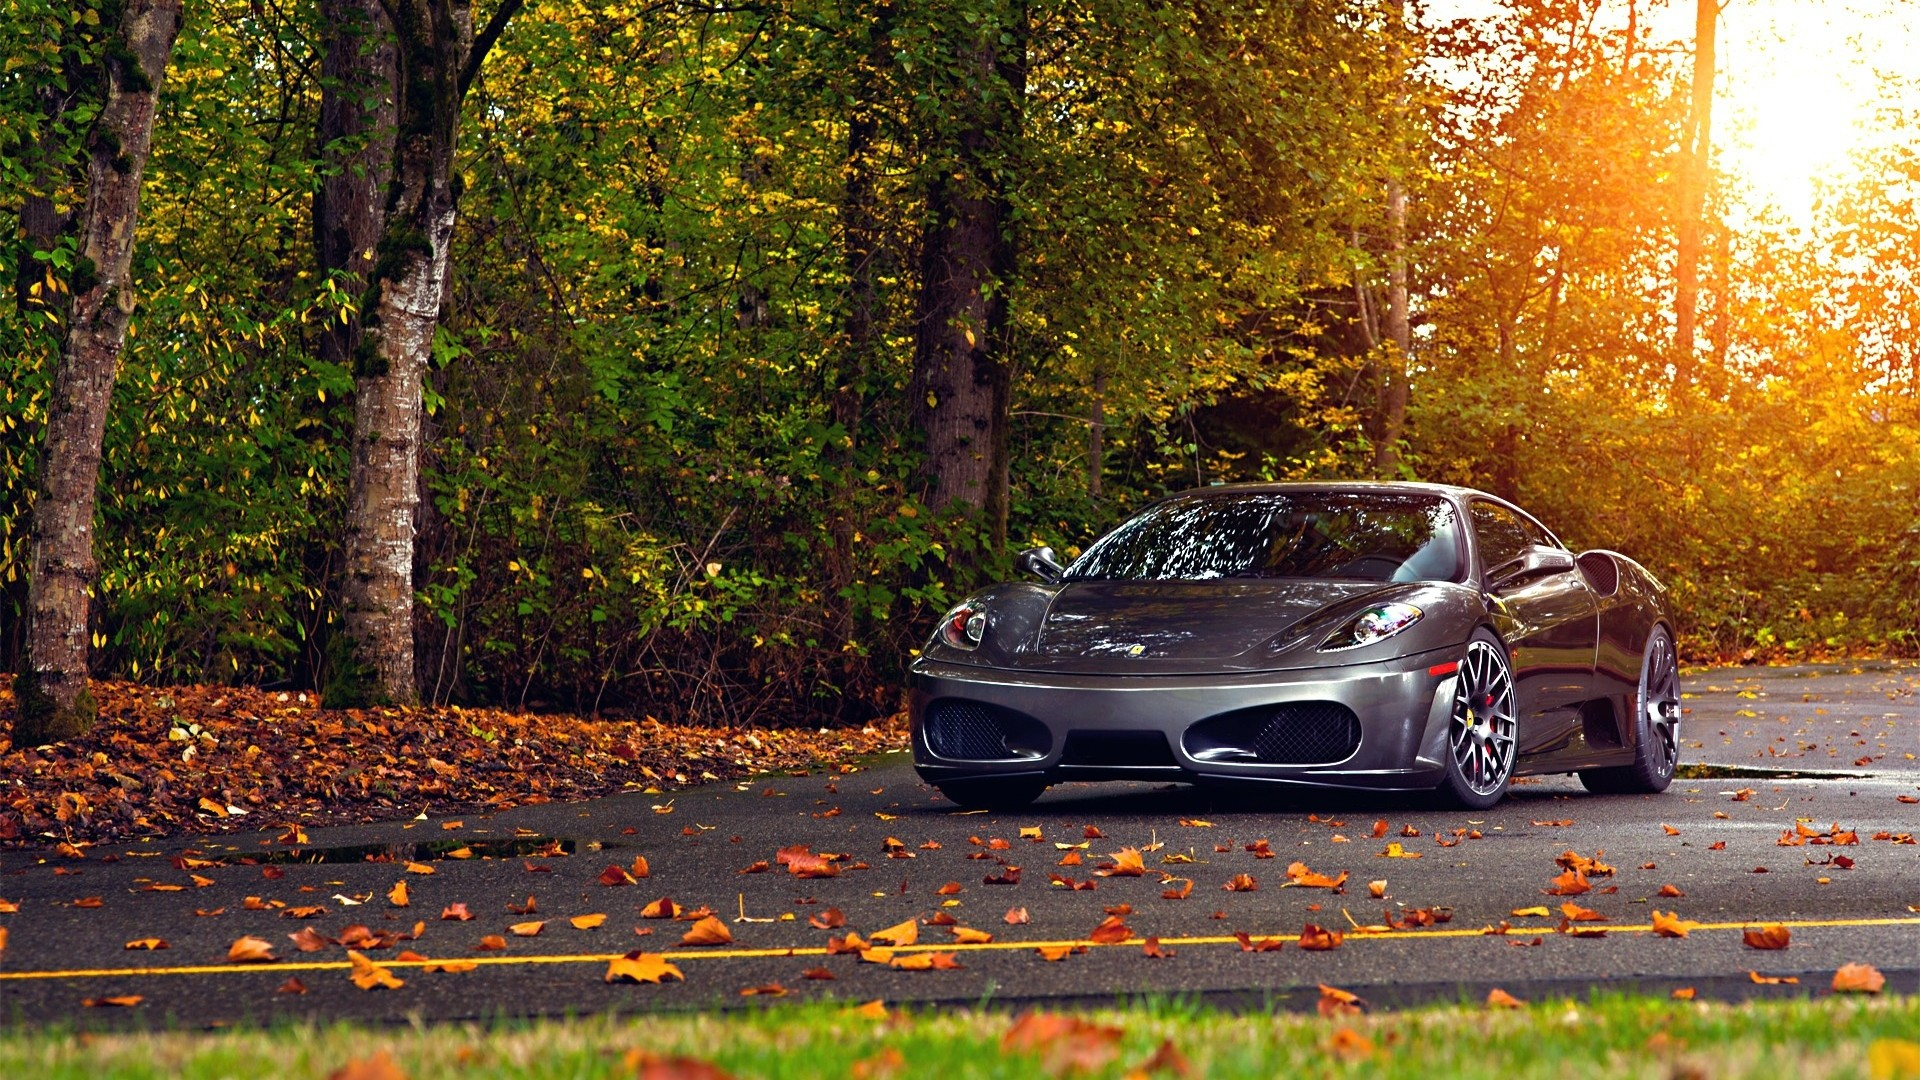 1920x1080 scuderia sports car autumn luxury, Desktop Backgrounds HD 1080p .